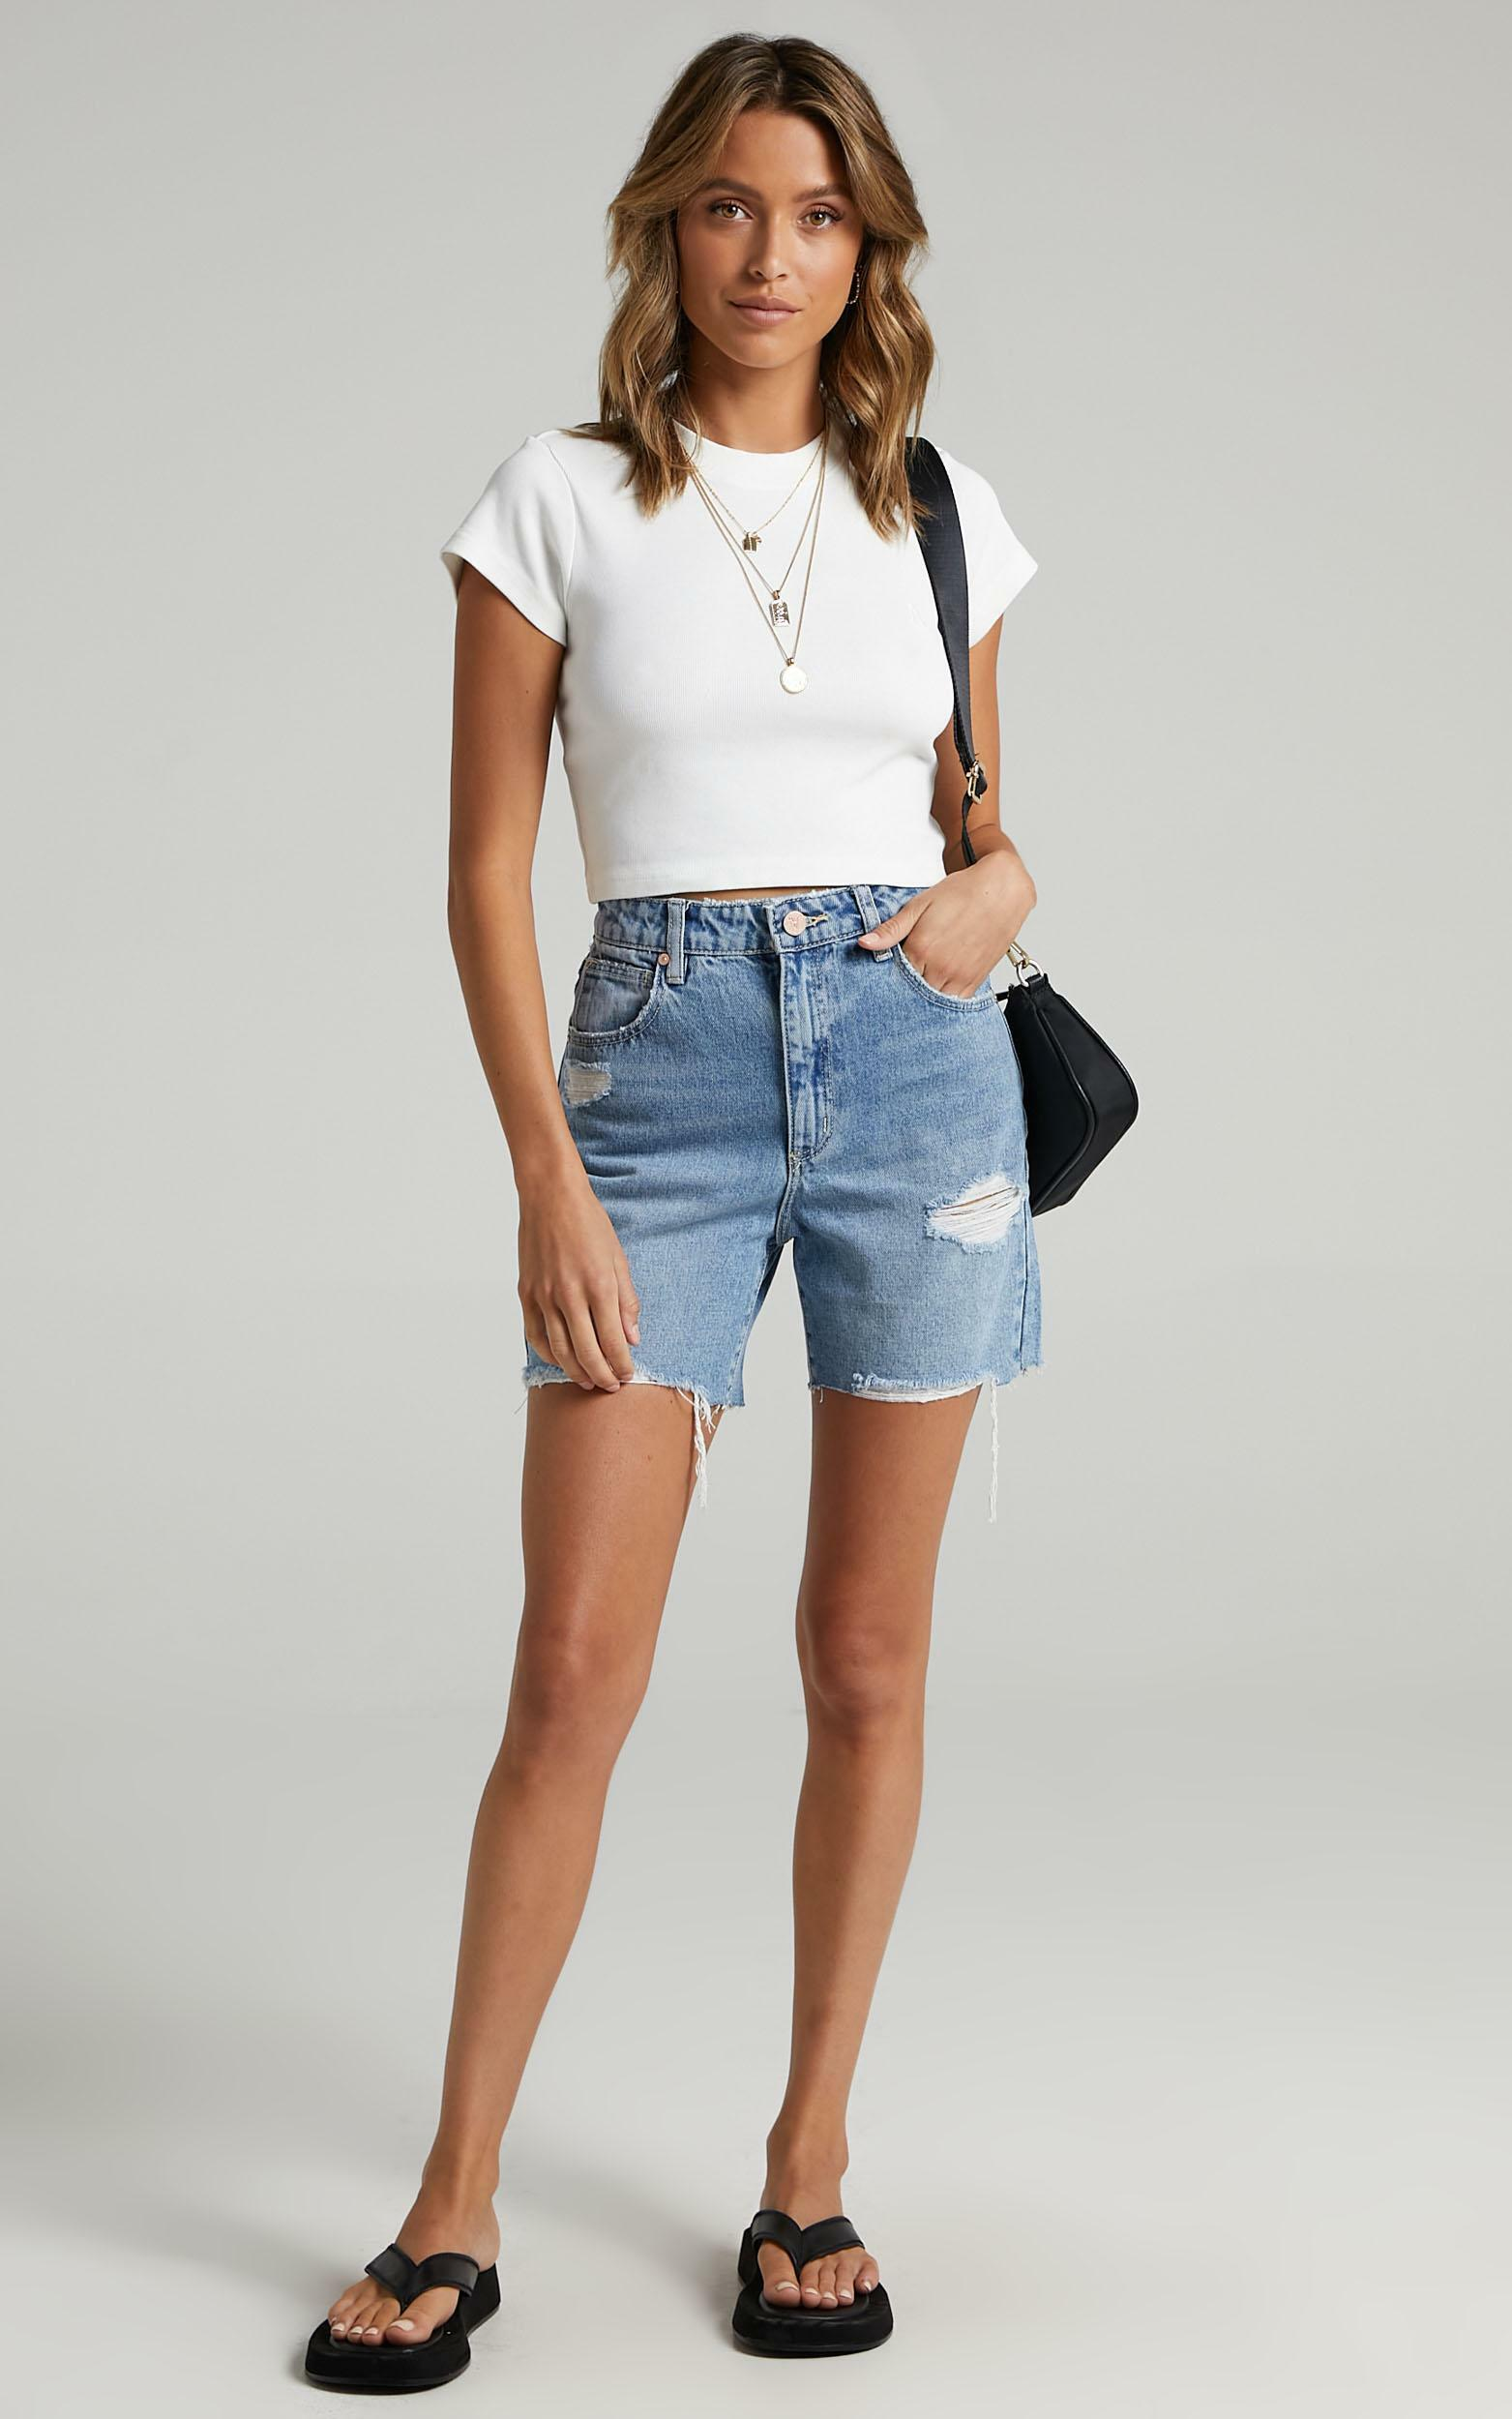 Abrand - 90s Crop Tee in White Sand - 8 (S), White, hi-res image number null